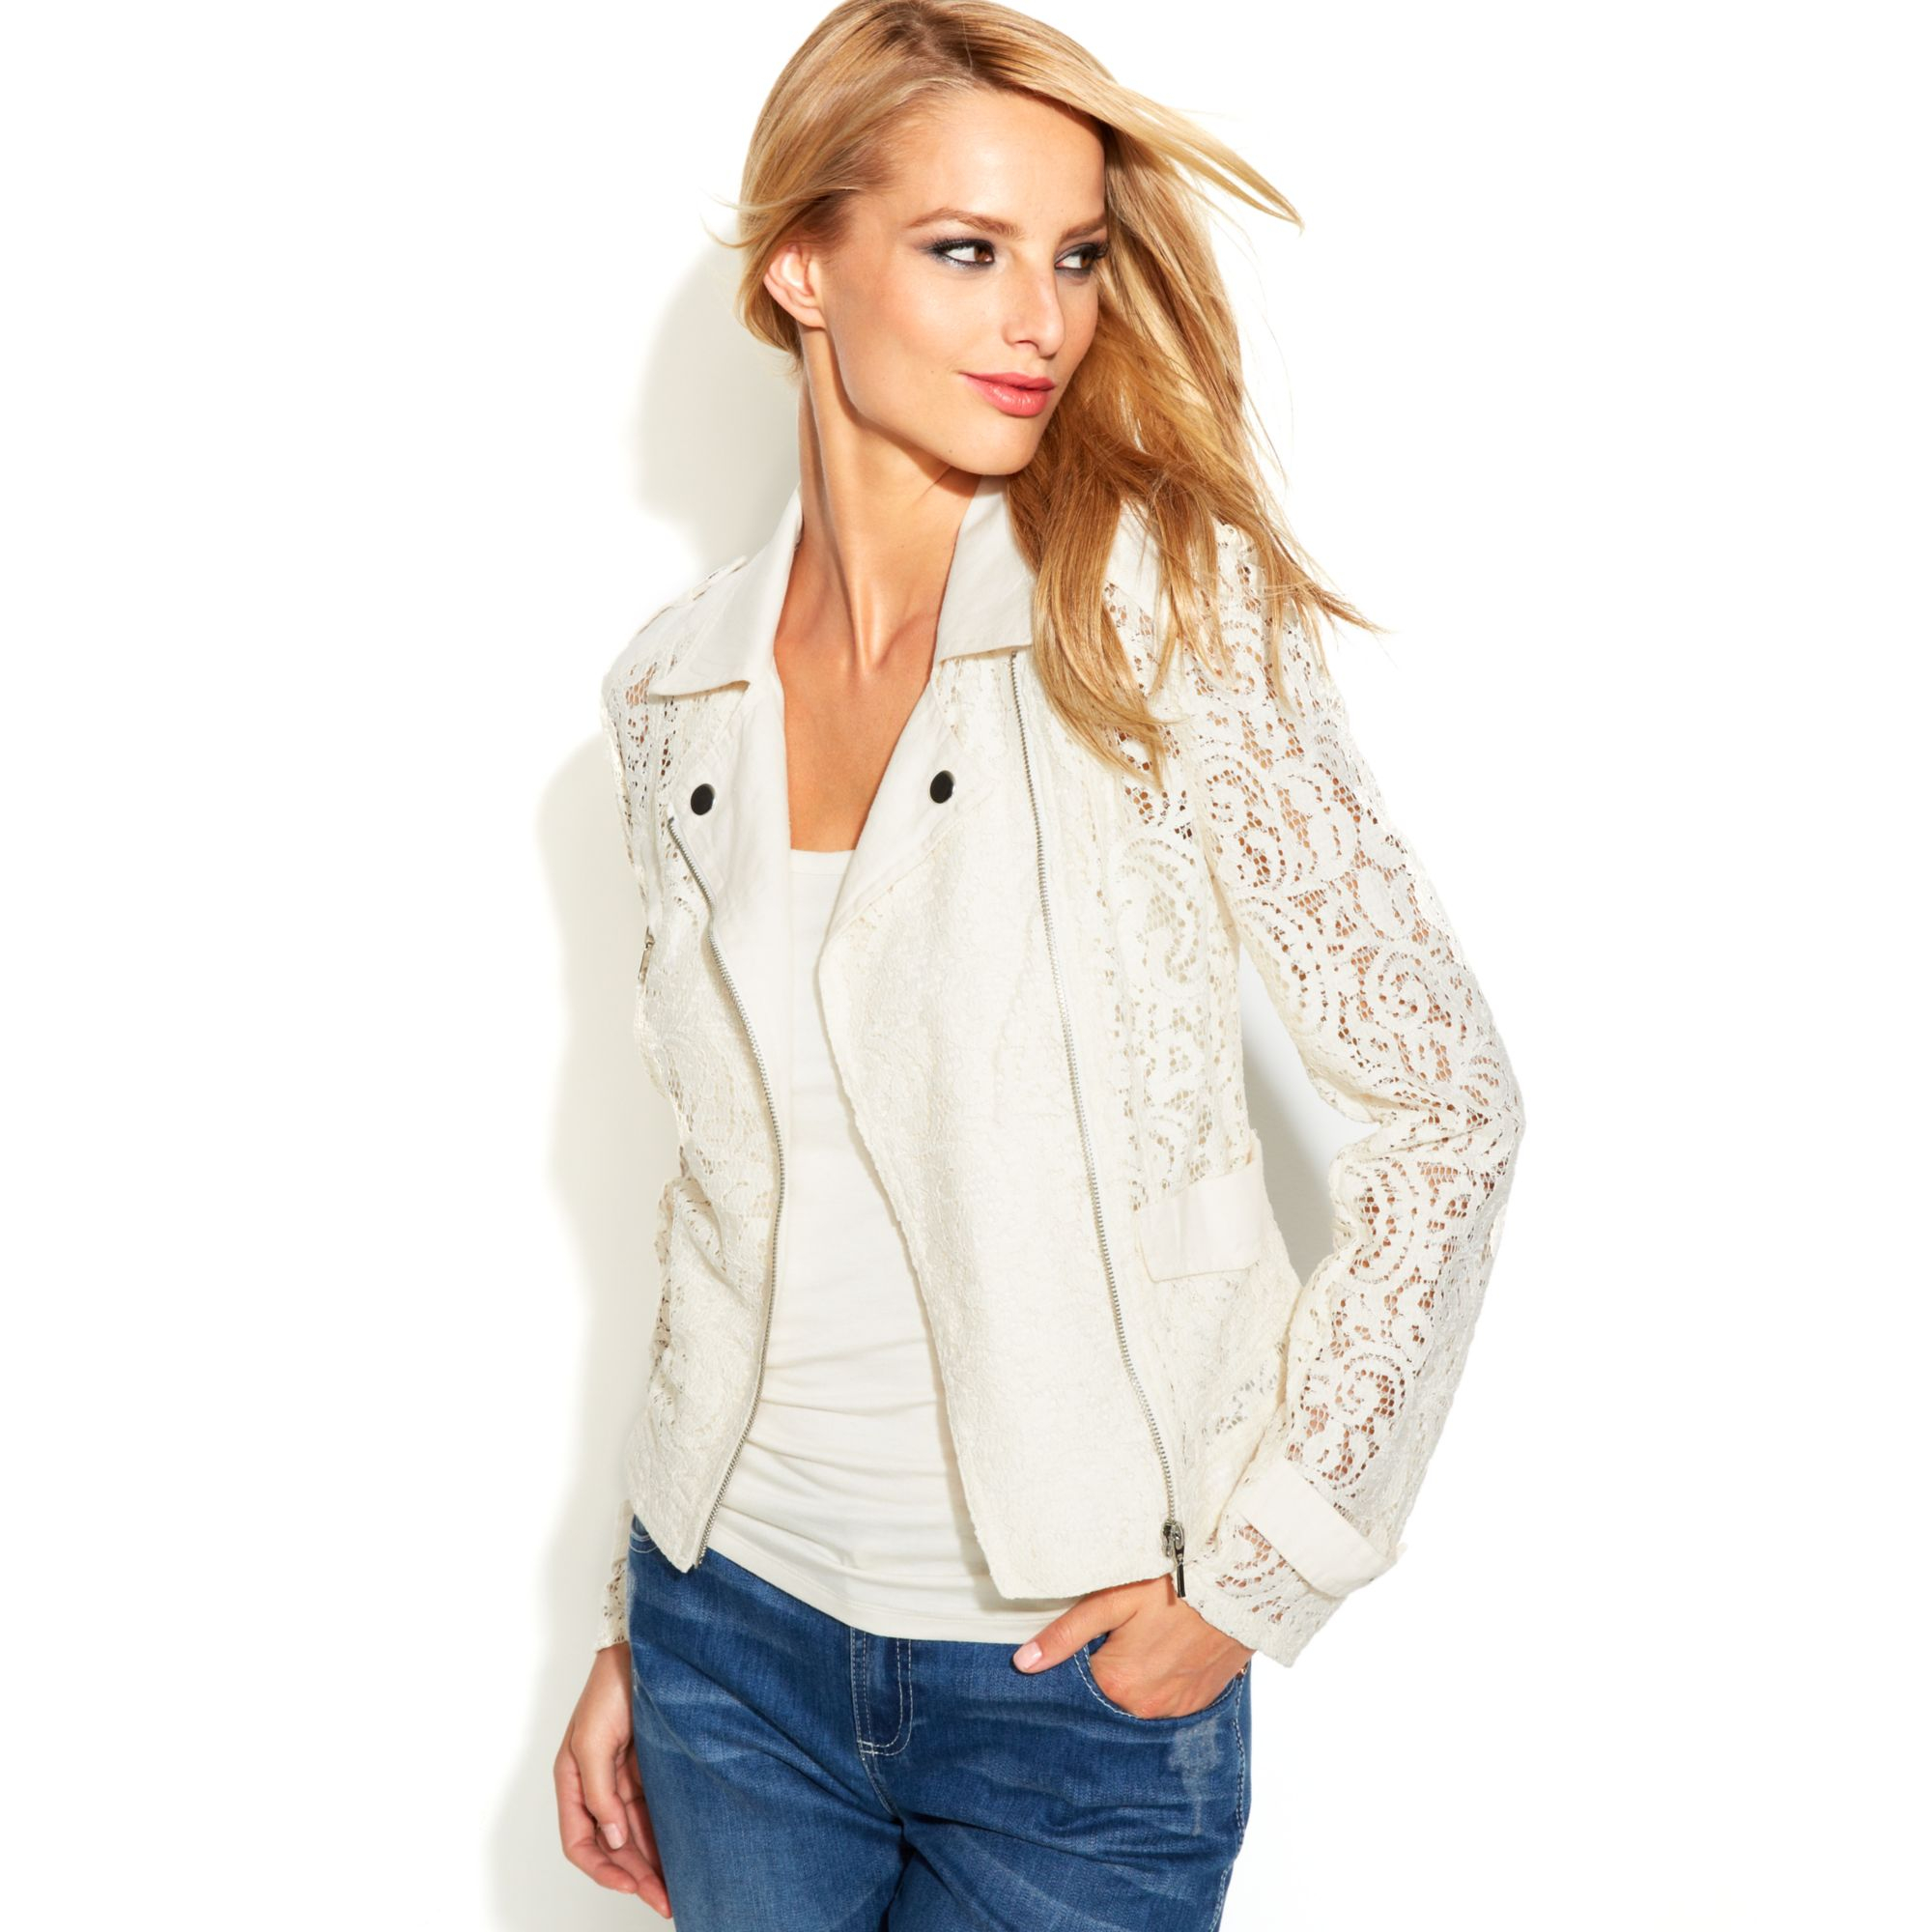 Lyst - INC International Concepts Asymmetrical Lace Moto Jacket in White 009022312